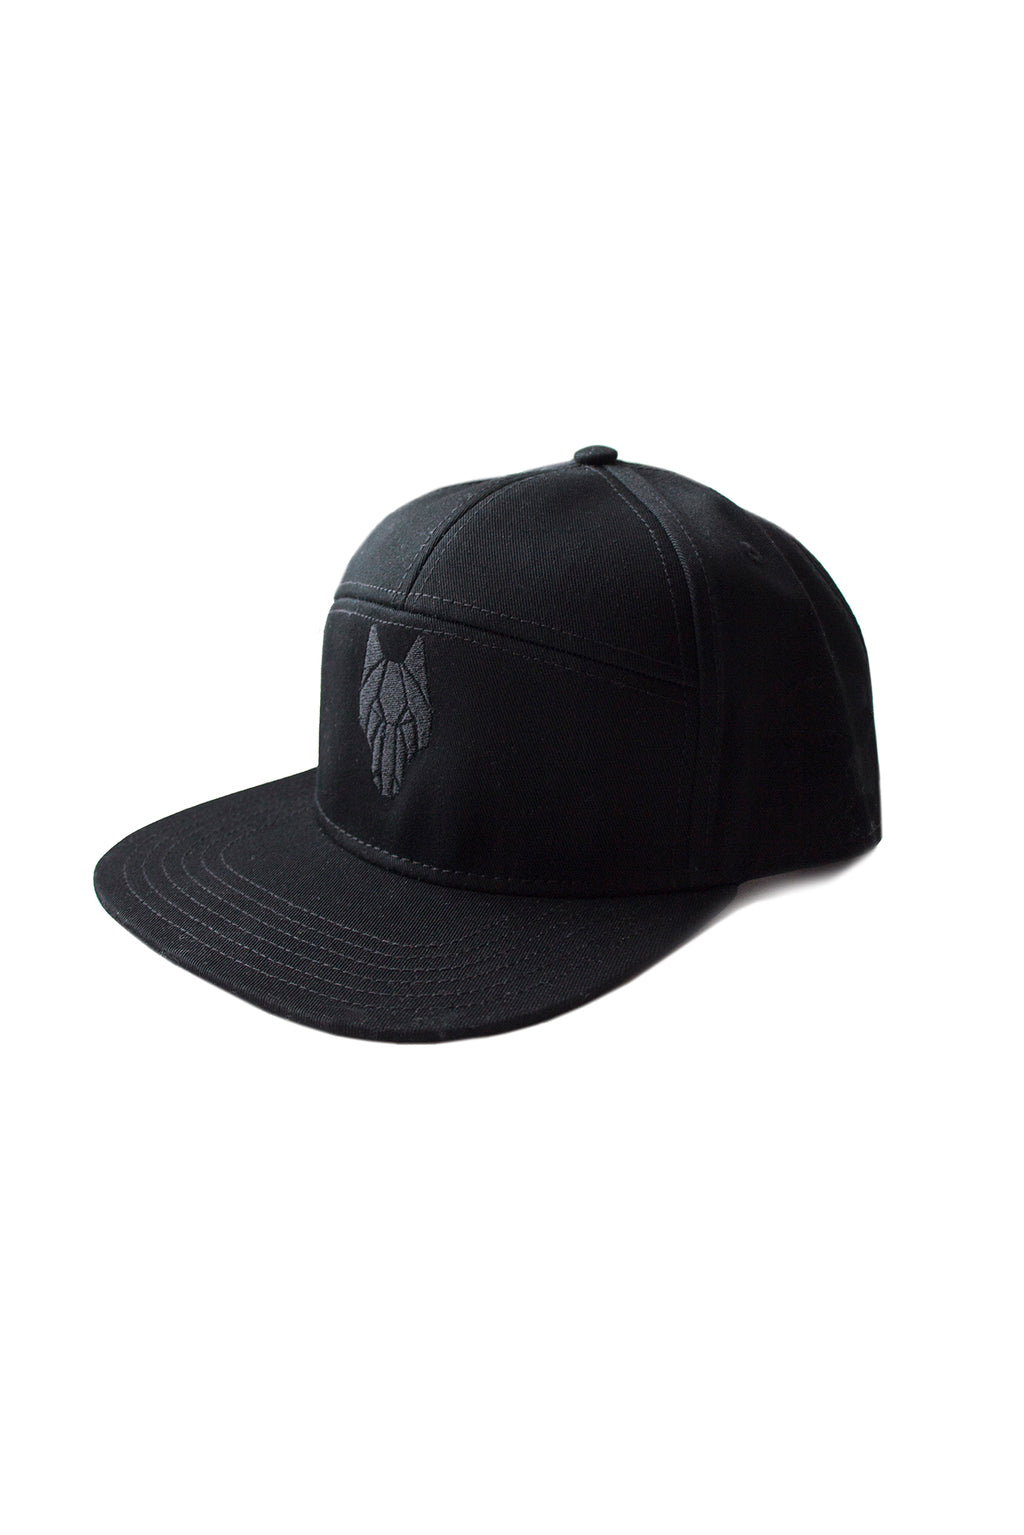 ONE WOLF BASEBALL cap black - One Wolf